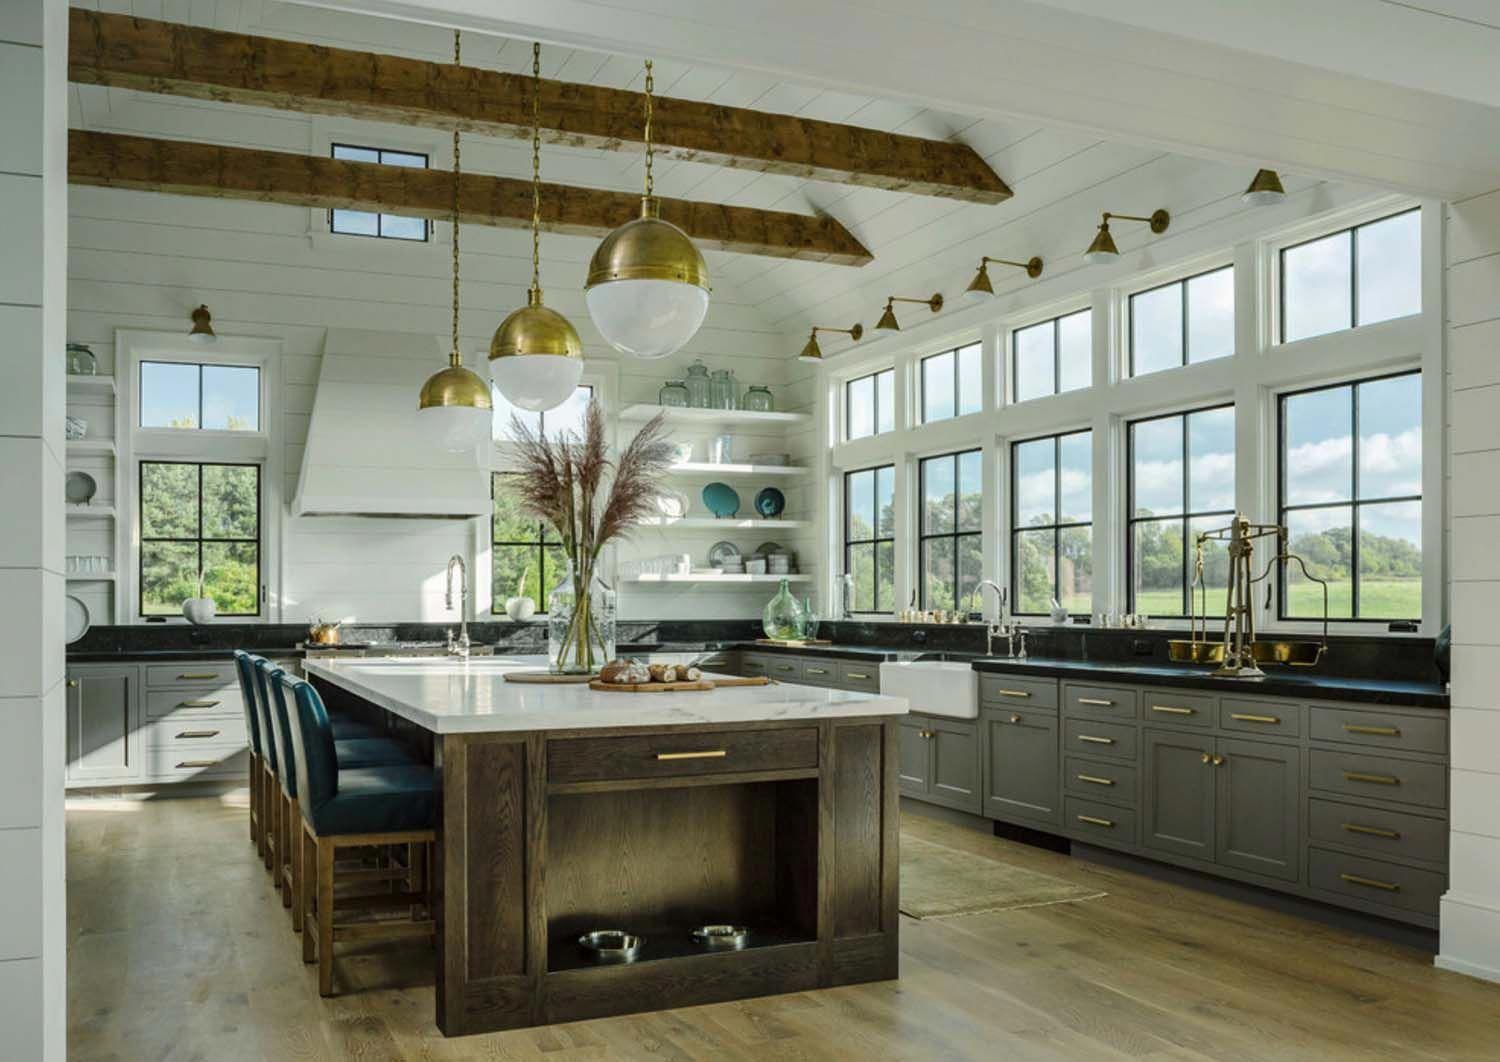 Traditional Farmhouse Style Dwelling In Vermont With A Modern Twist Contemporaryinte Rustic Farmhouse Kitchen Farmhouse Kitchen Design Interior Design Kitchen